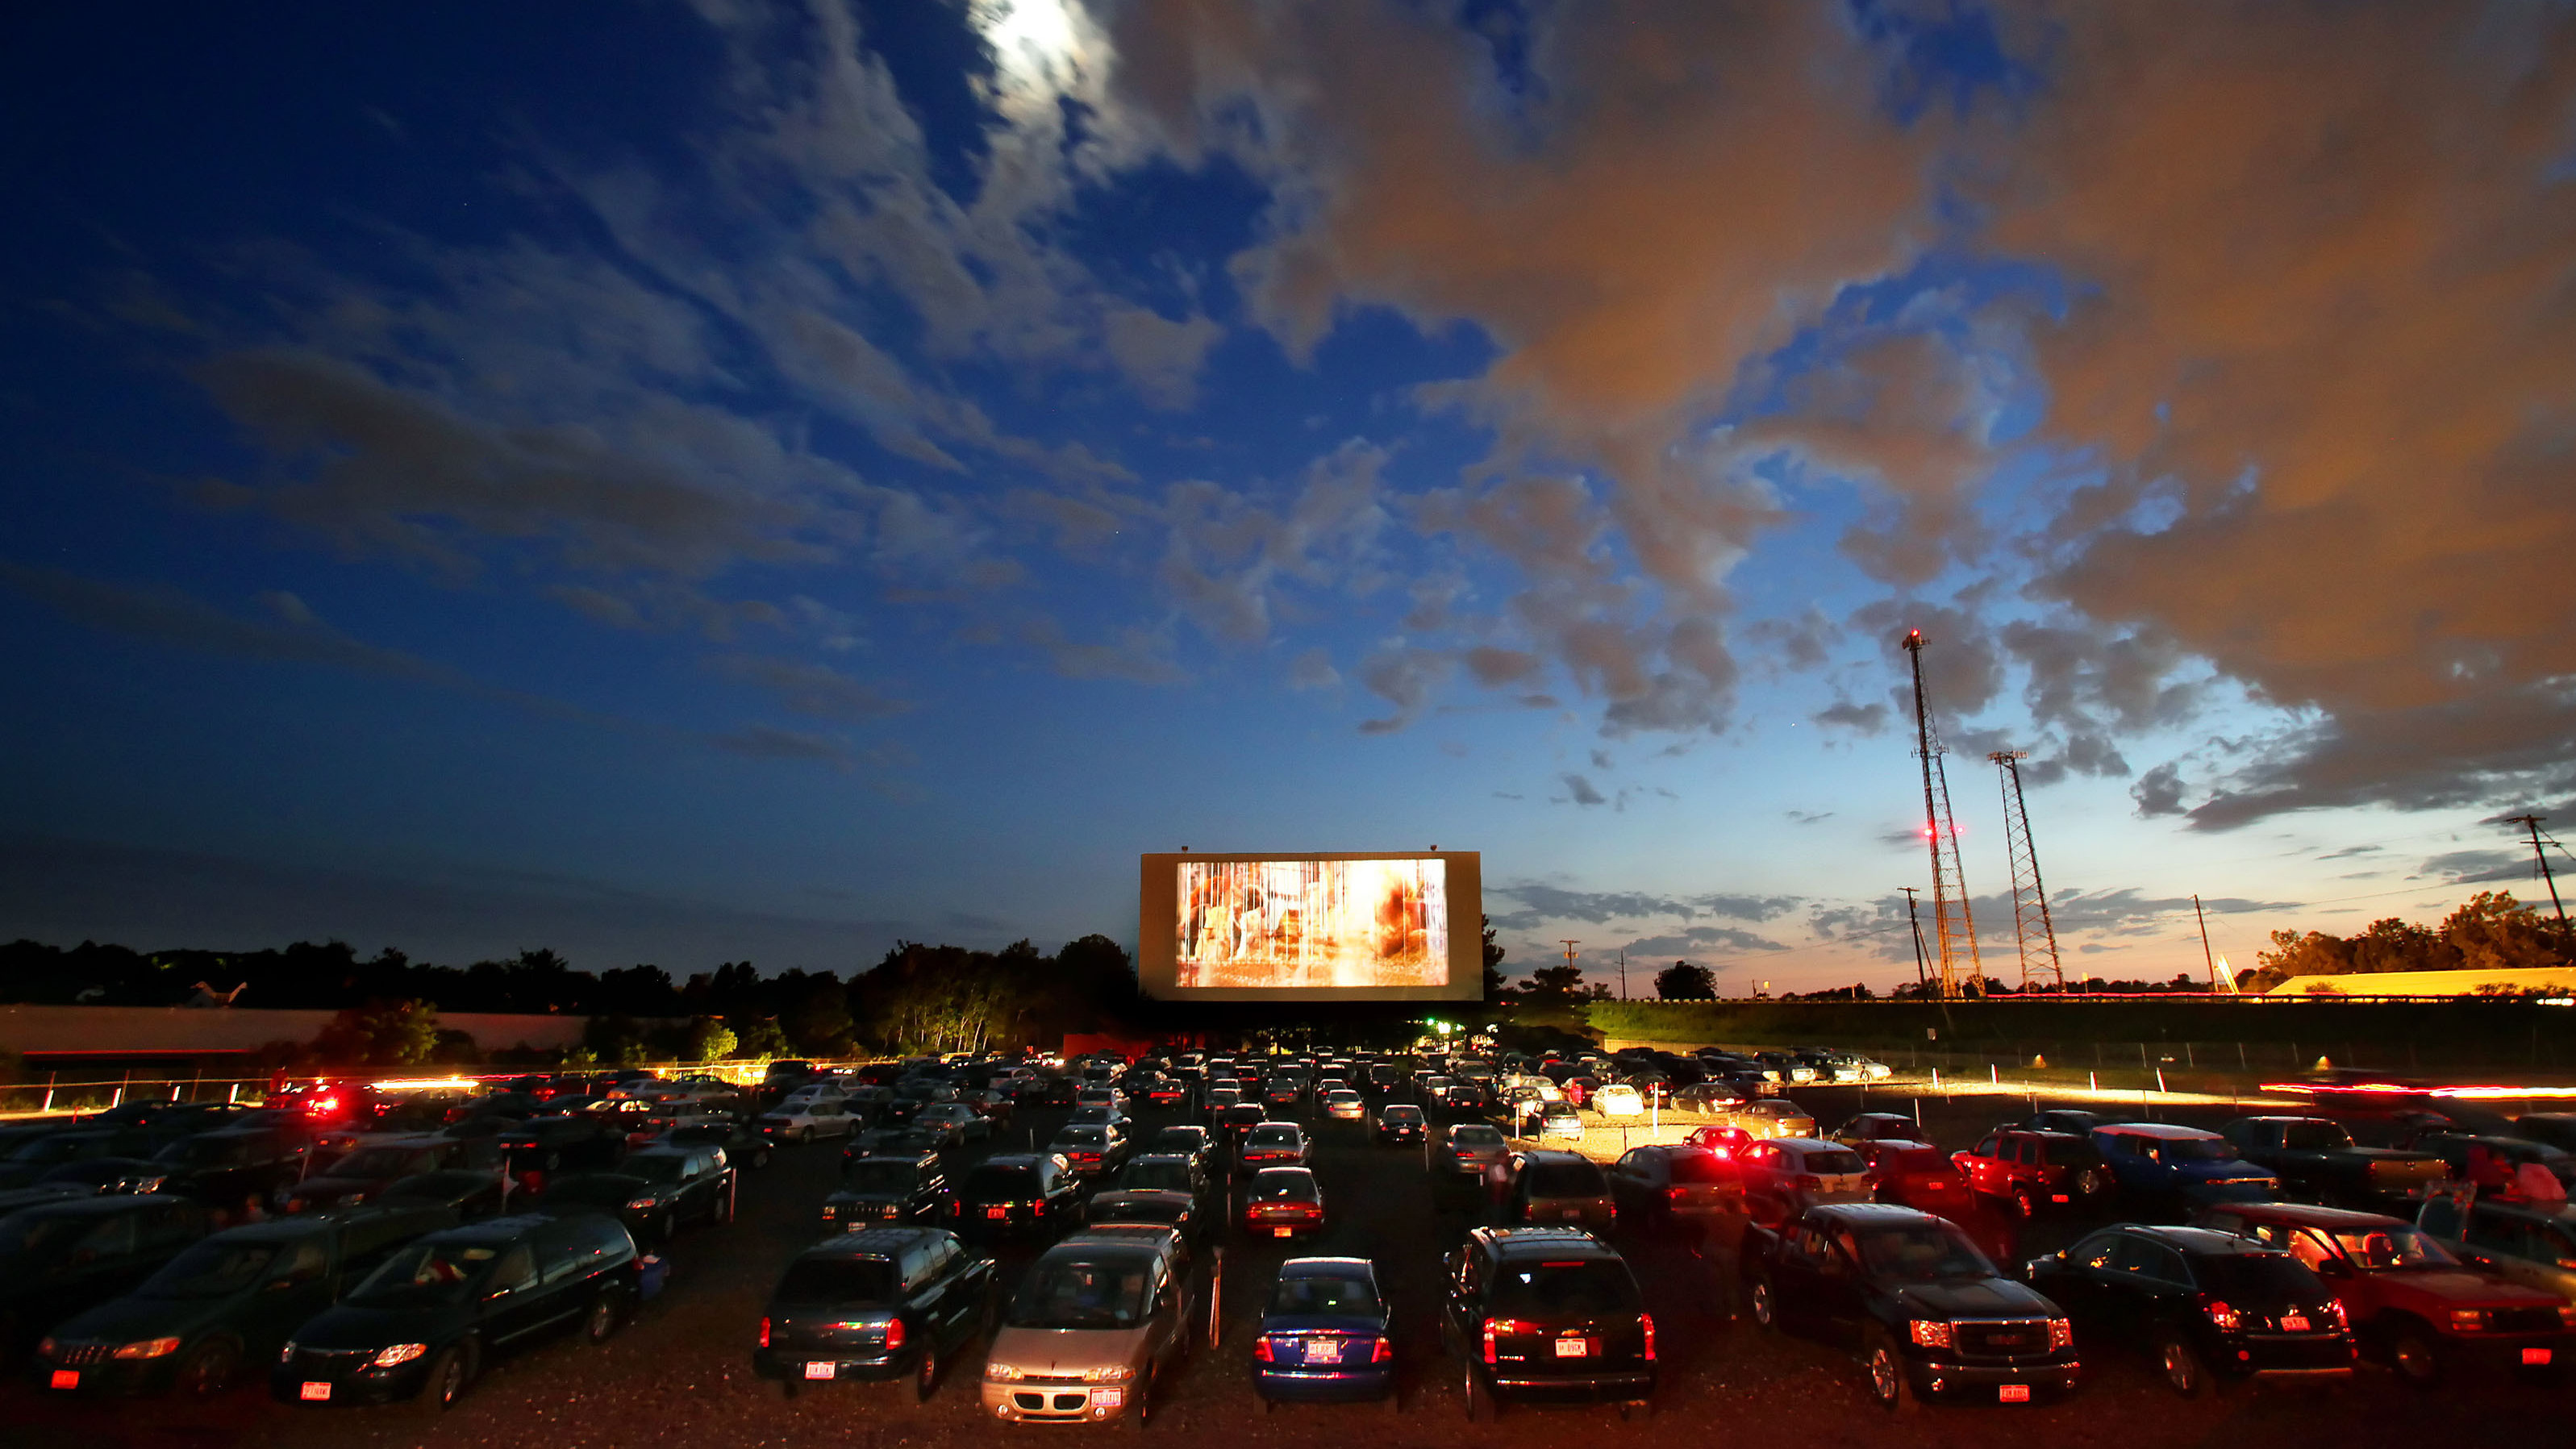 The nearest drive in movie theater